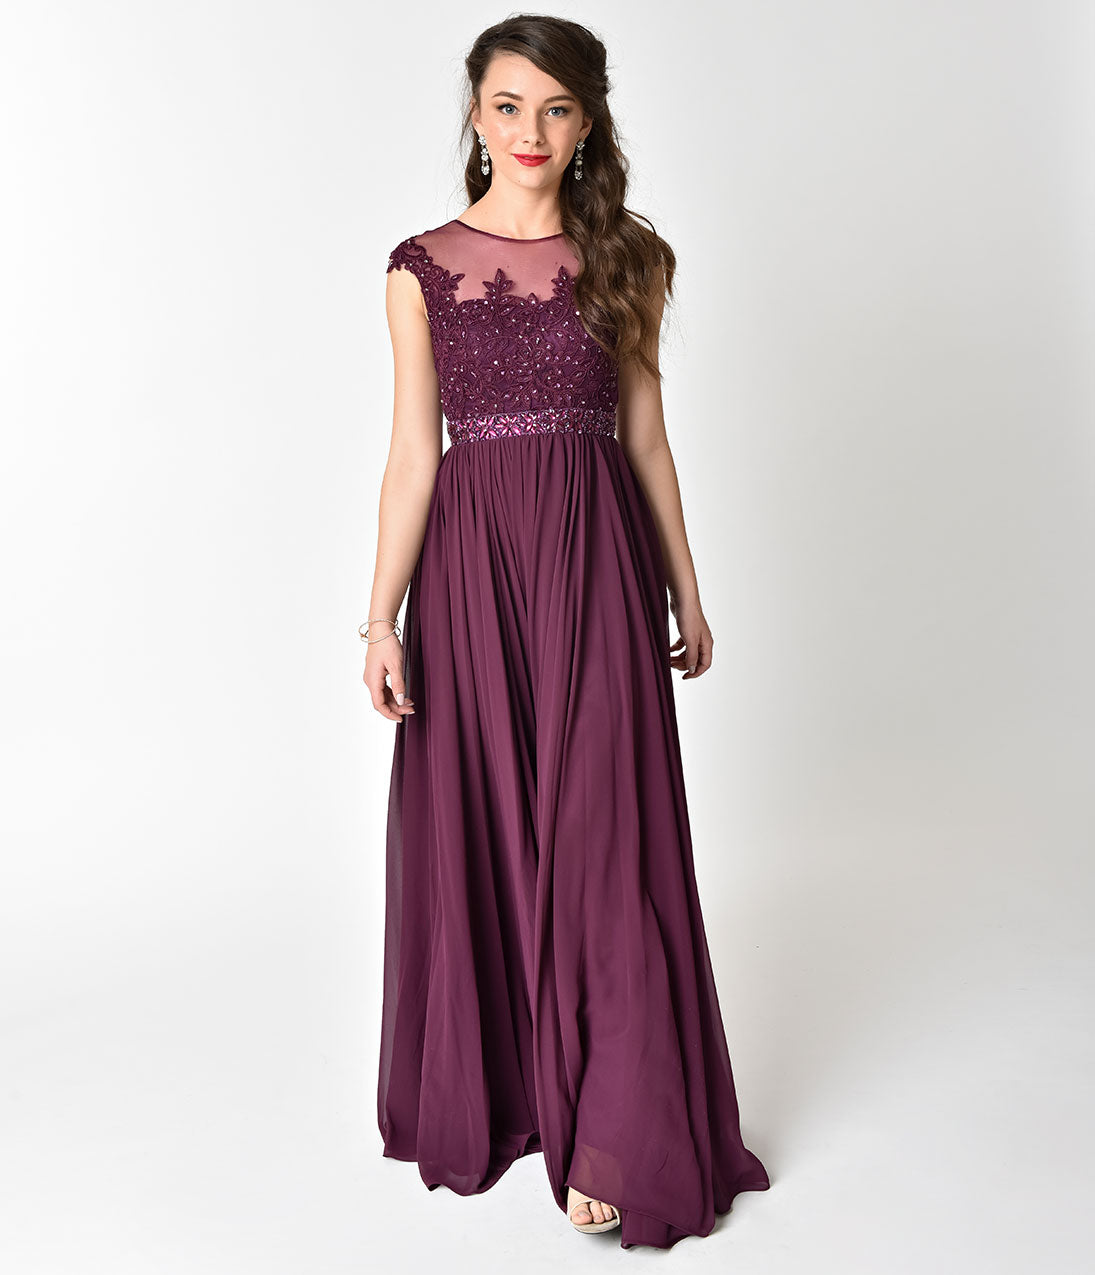 1950s Formal Dresses & Evening Gowns Eggplant Purple Embellished Lace  Chiffon Cap Sleeve Prom Gown $142.00 AT vintagedancer.com